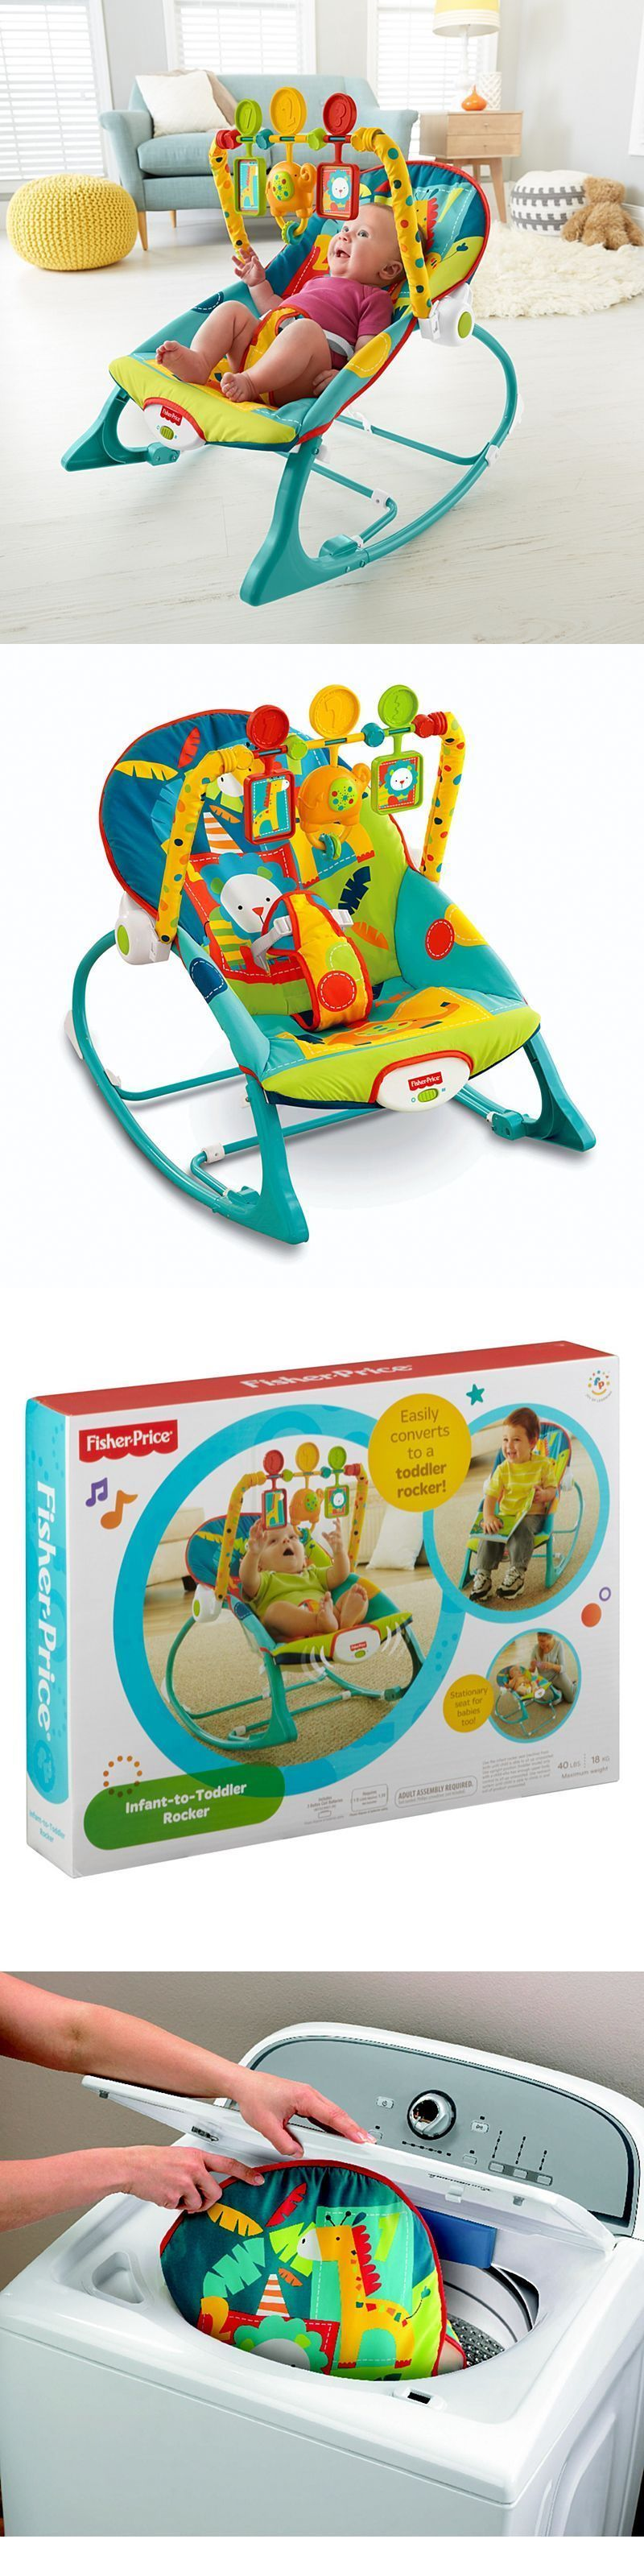 Bouncers and vibrating chairs infanttotoddler baby rocker